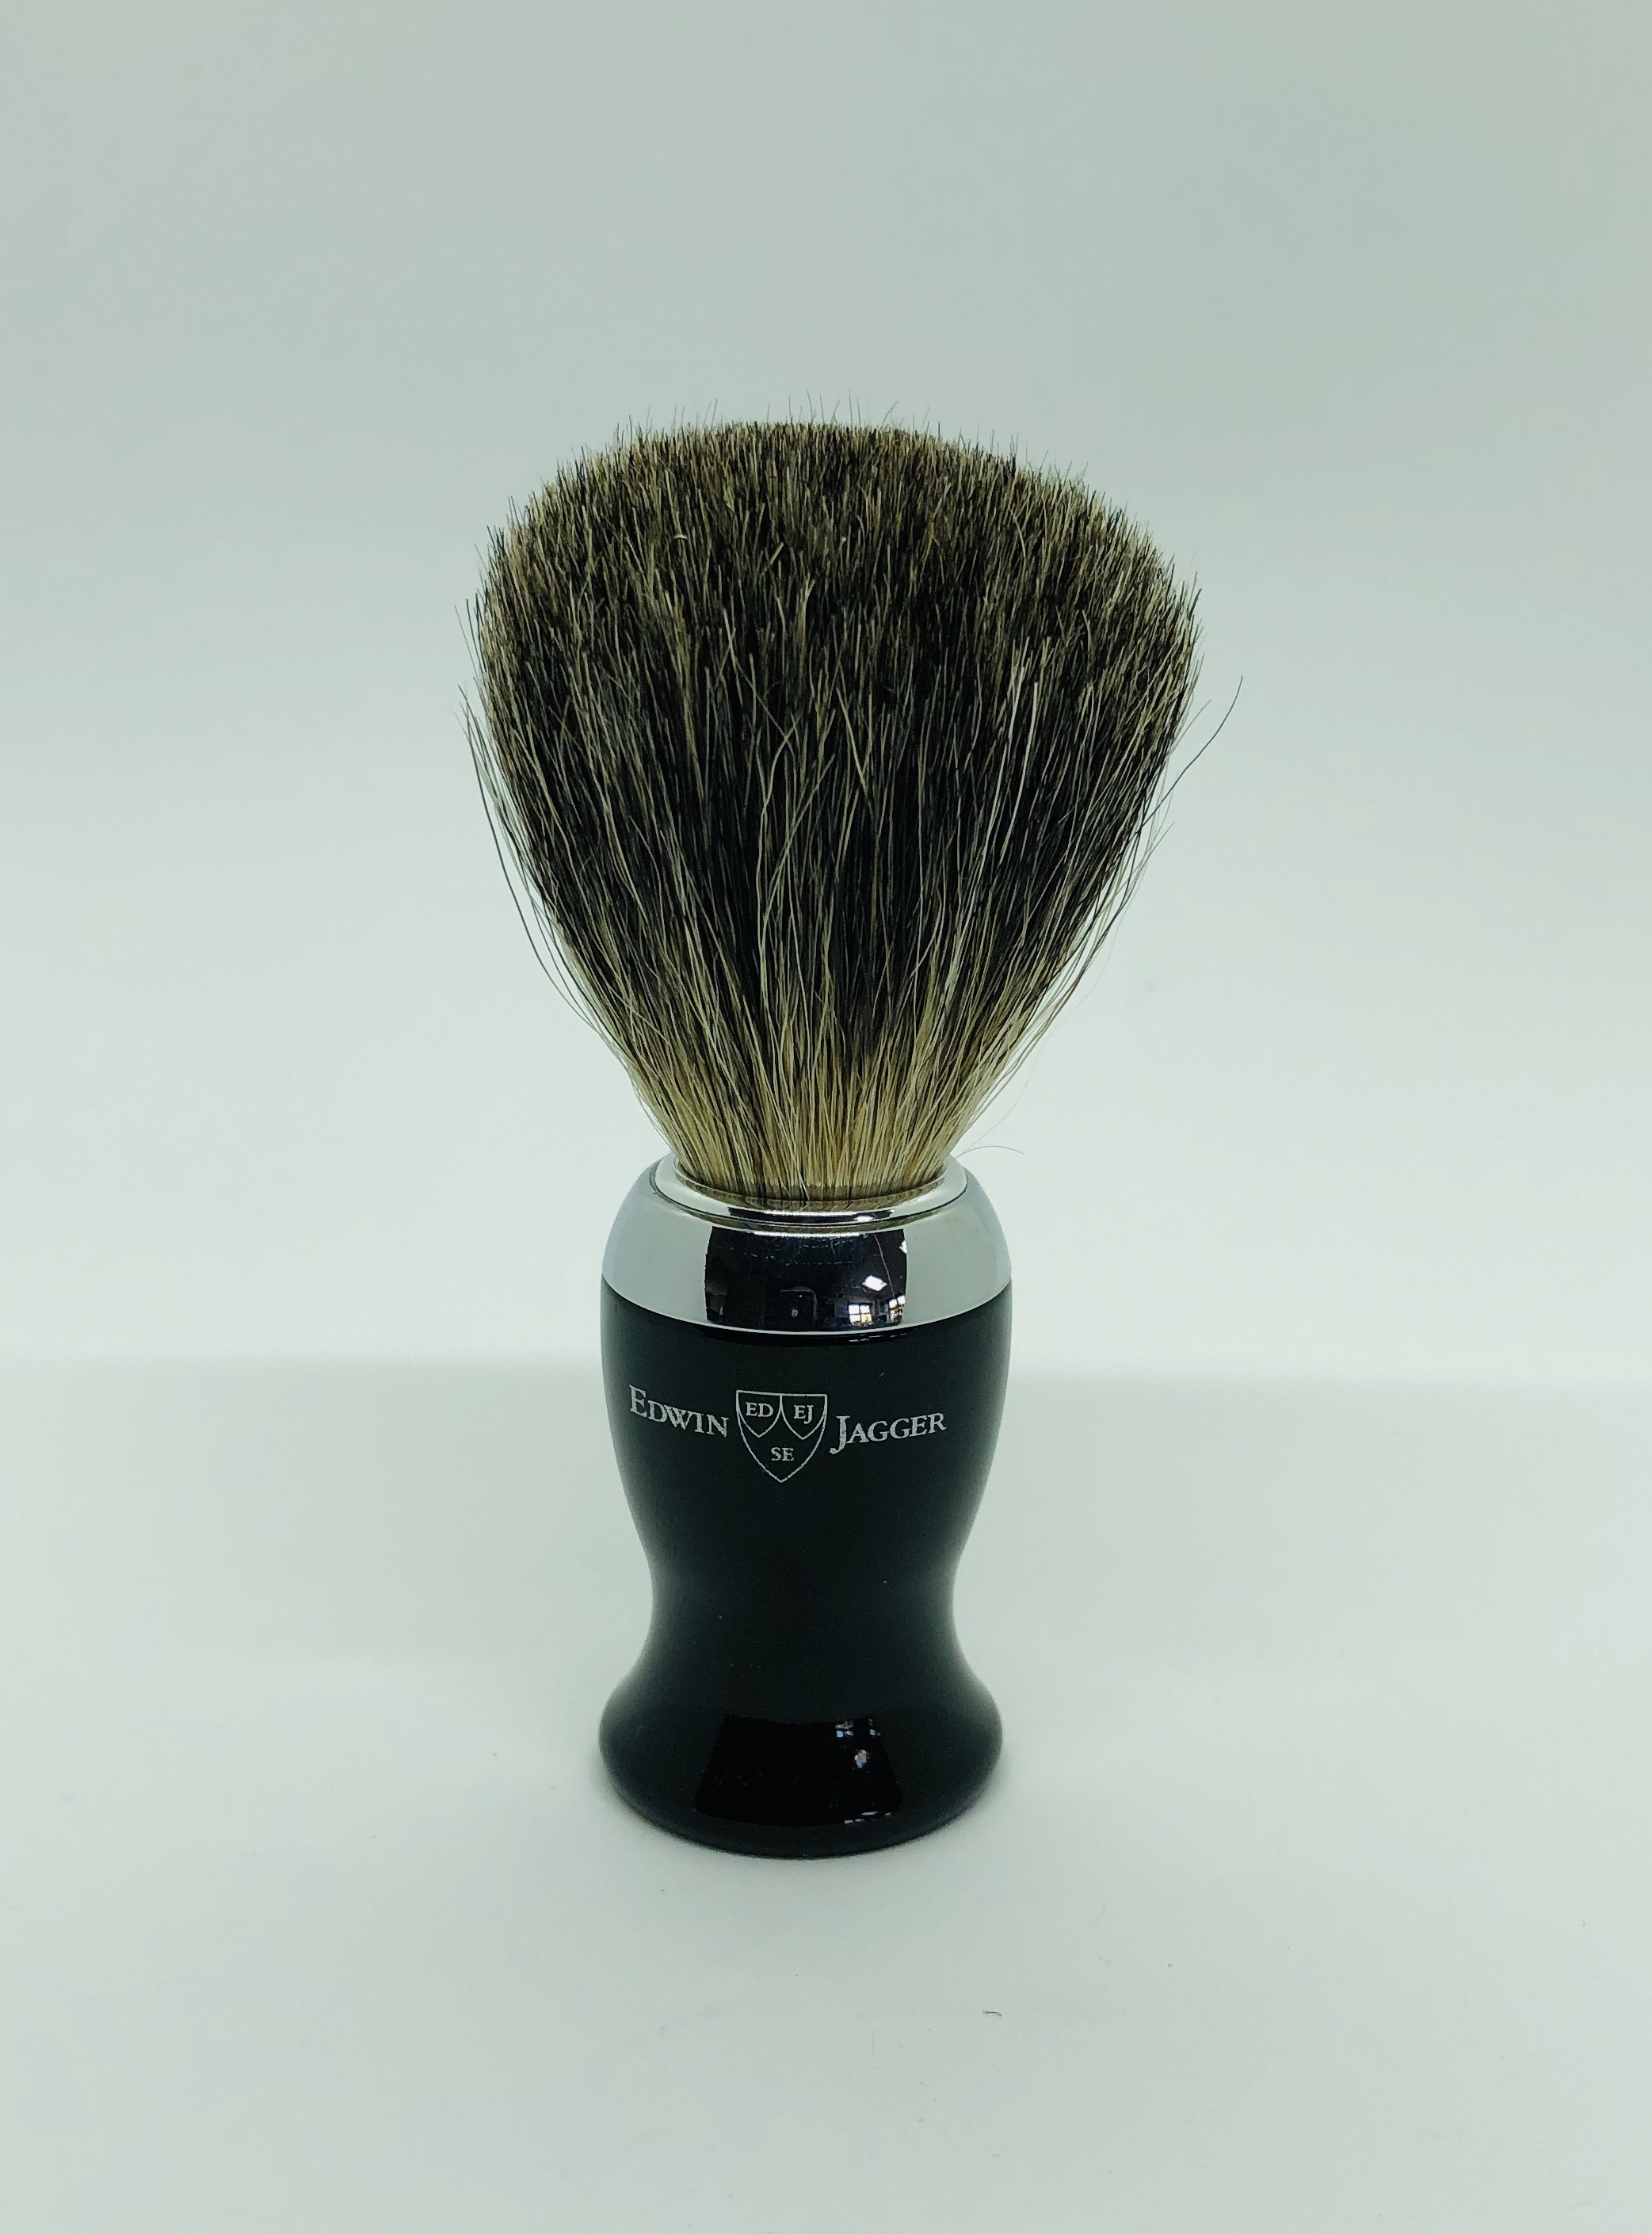 Edwin jagger 1 part chrome pure badger brush